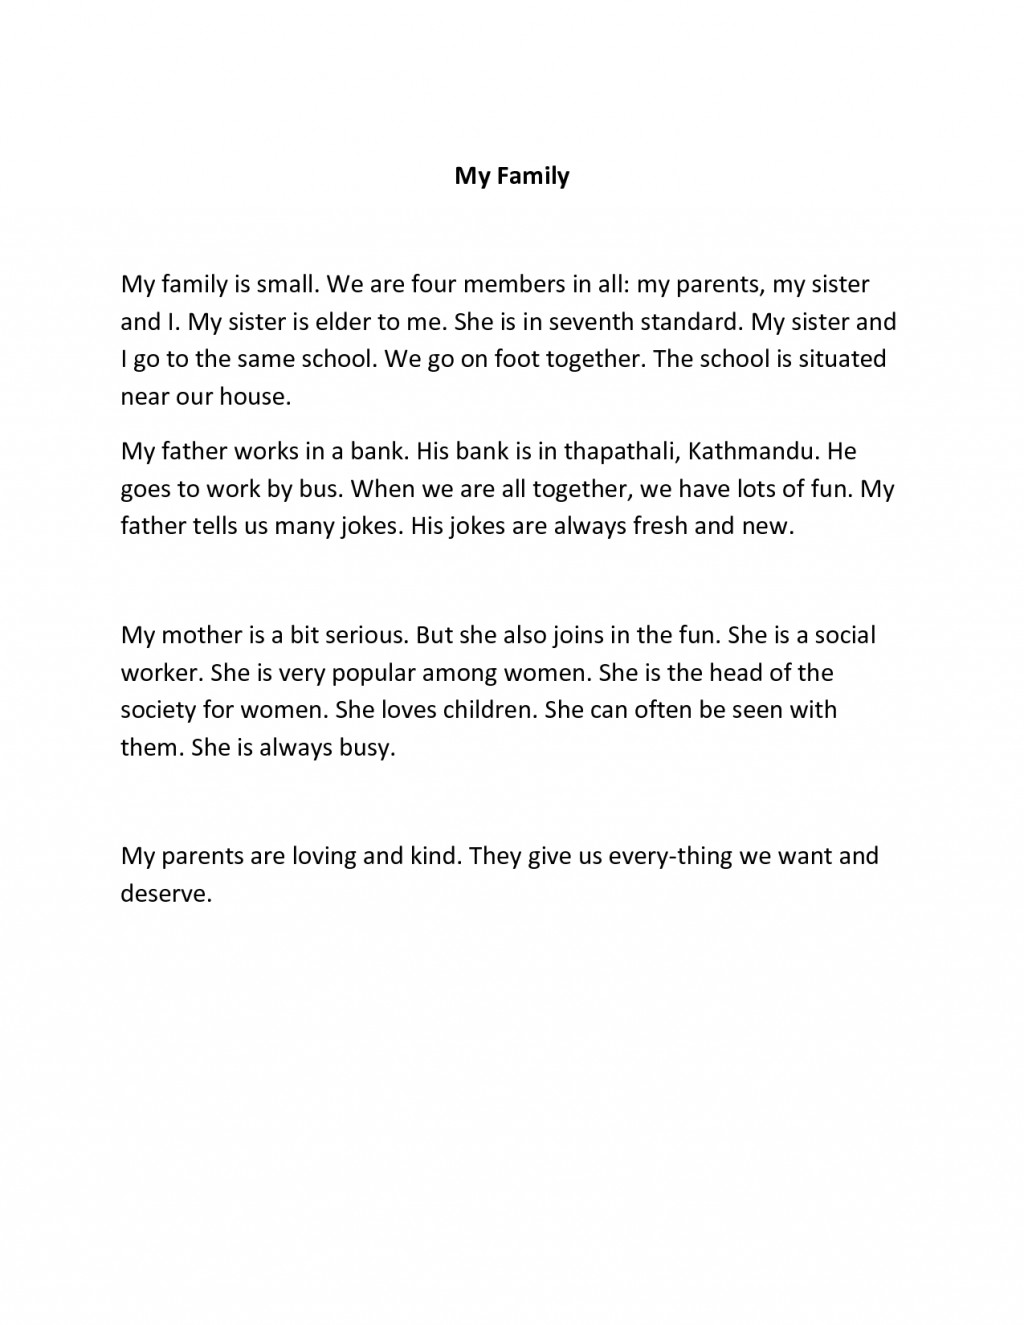 003 Short Essay On My Family In English L Example How To Write Surprising A Response Answer Question Apa Format Large